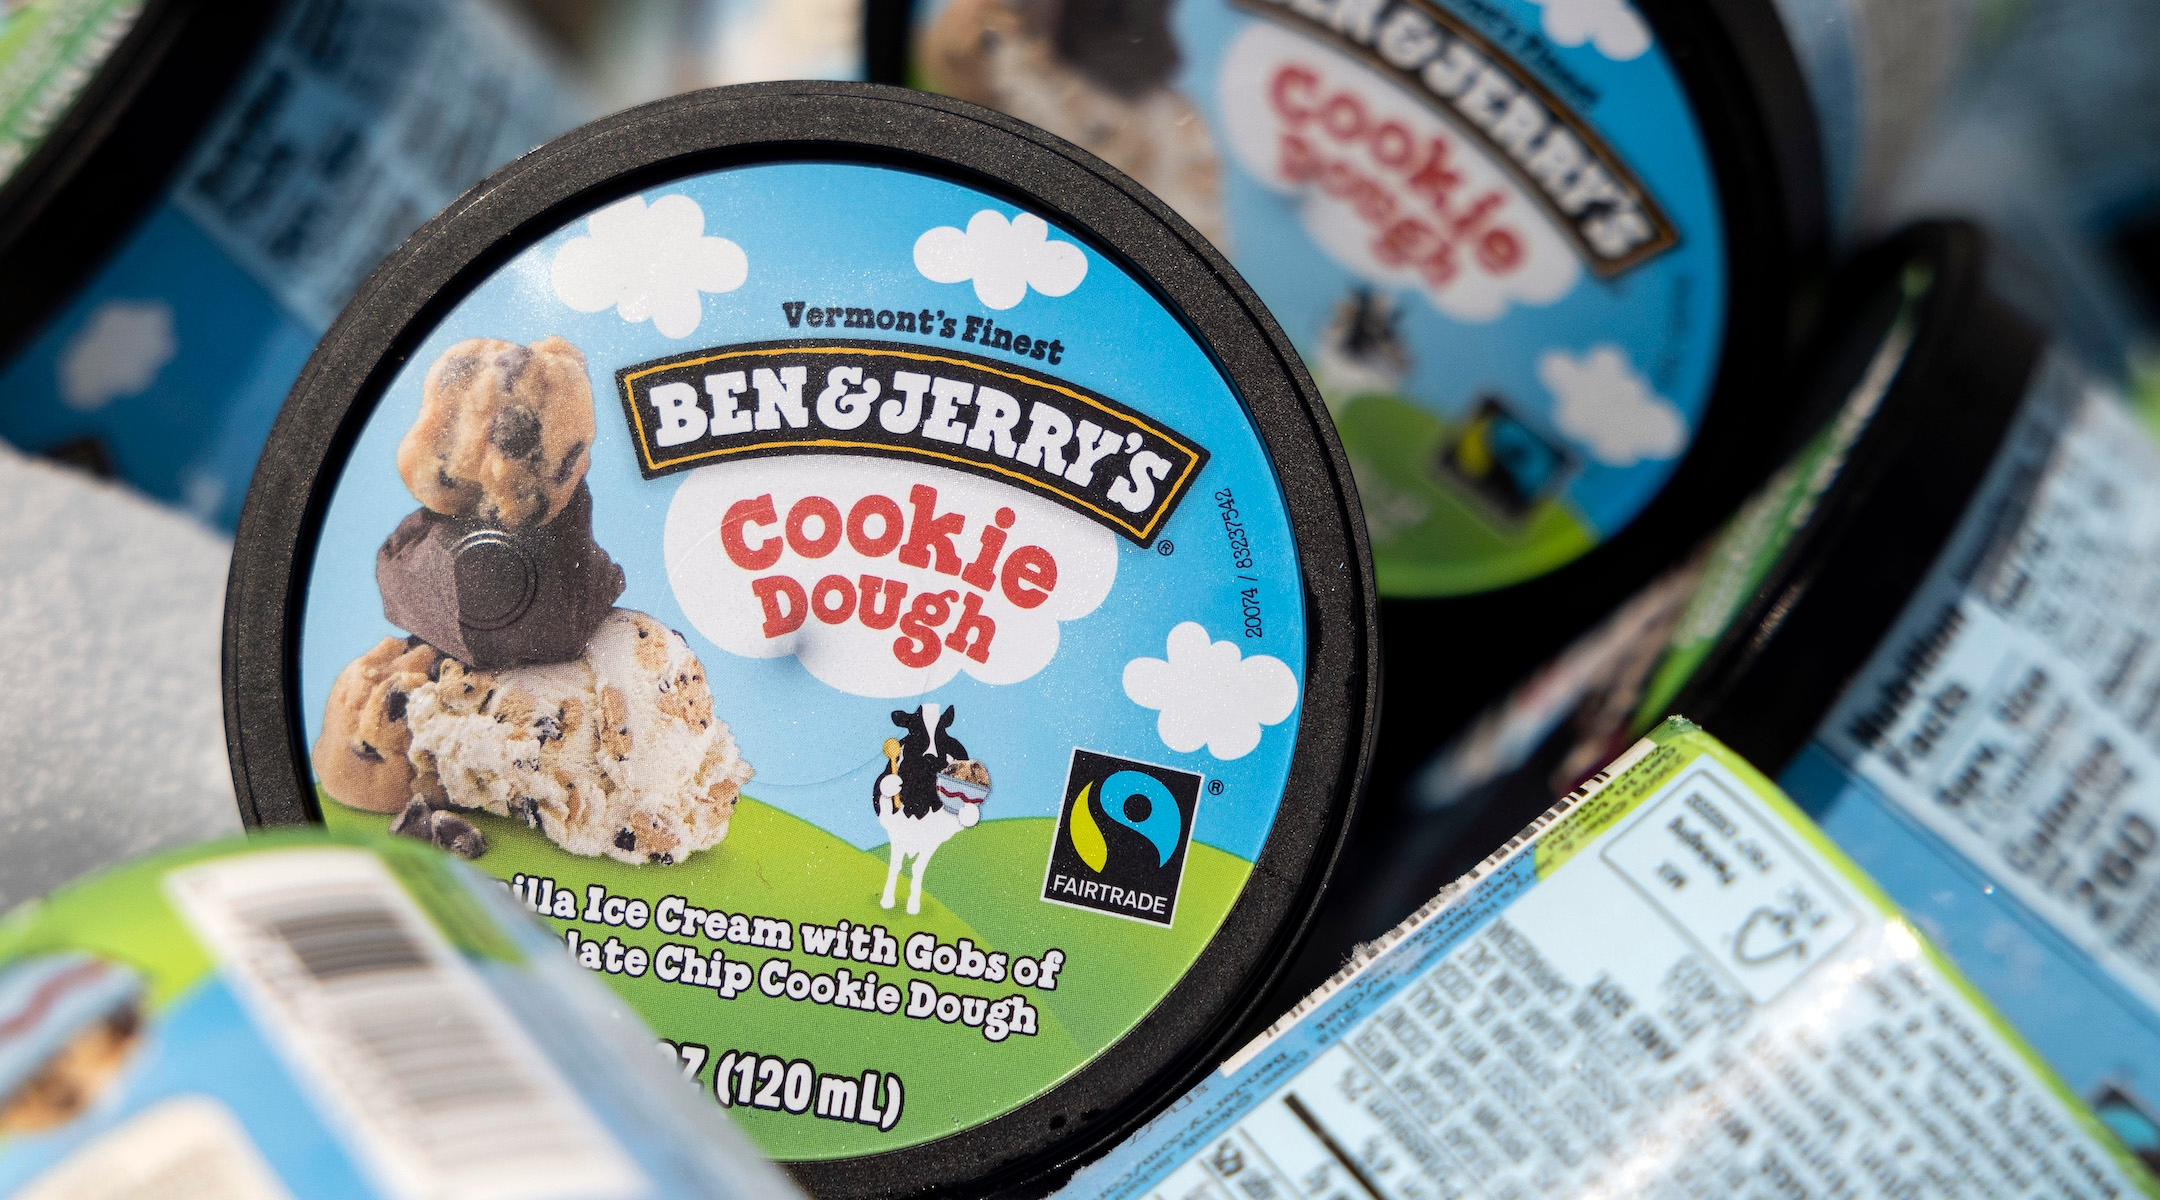 Retaliating against boycott decision, NYC grocery chain to reduce Ben & Jerry's sales